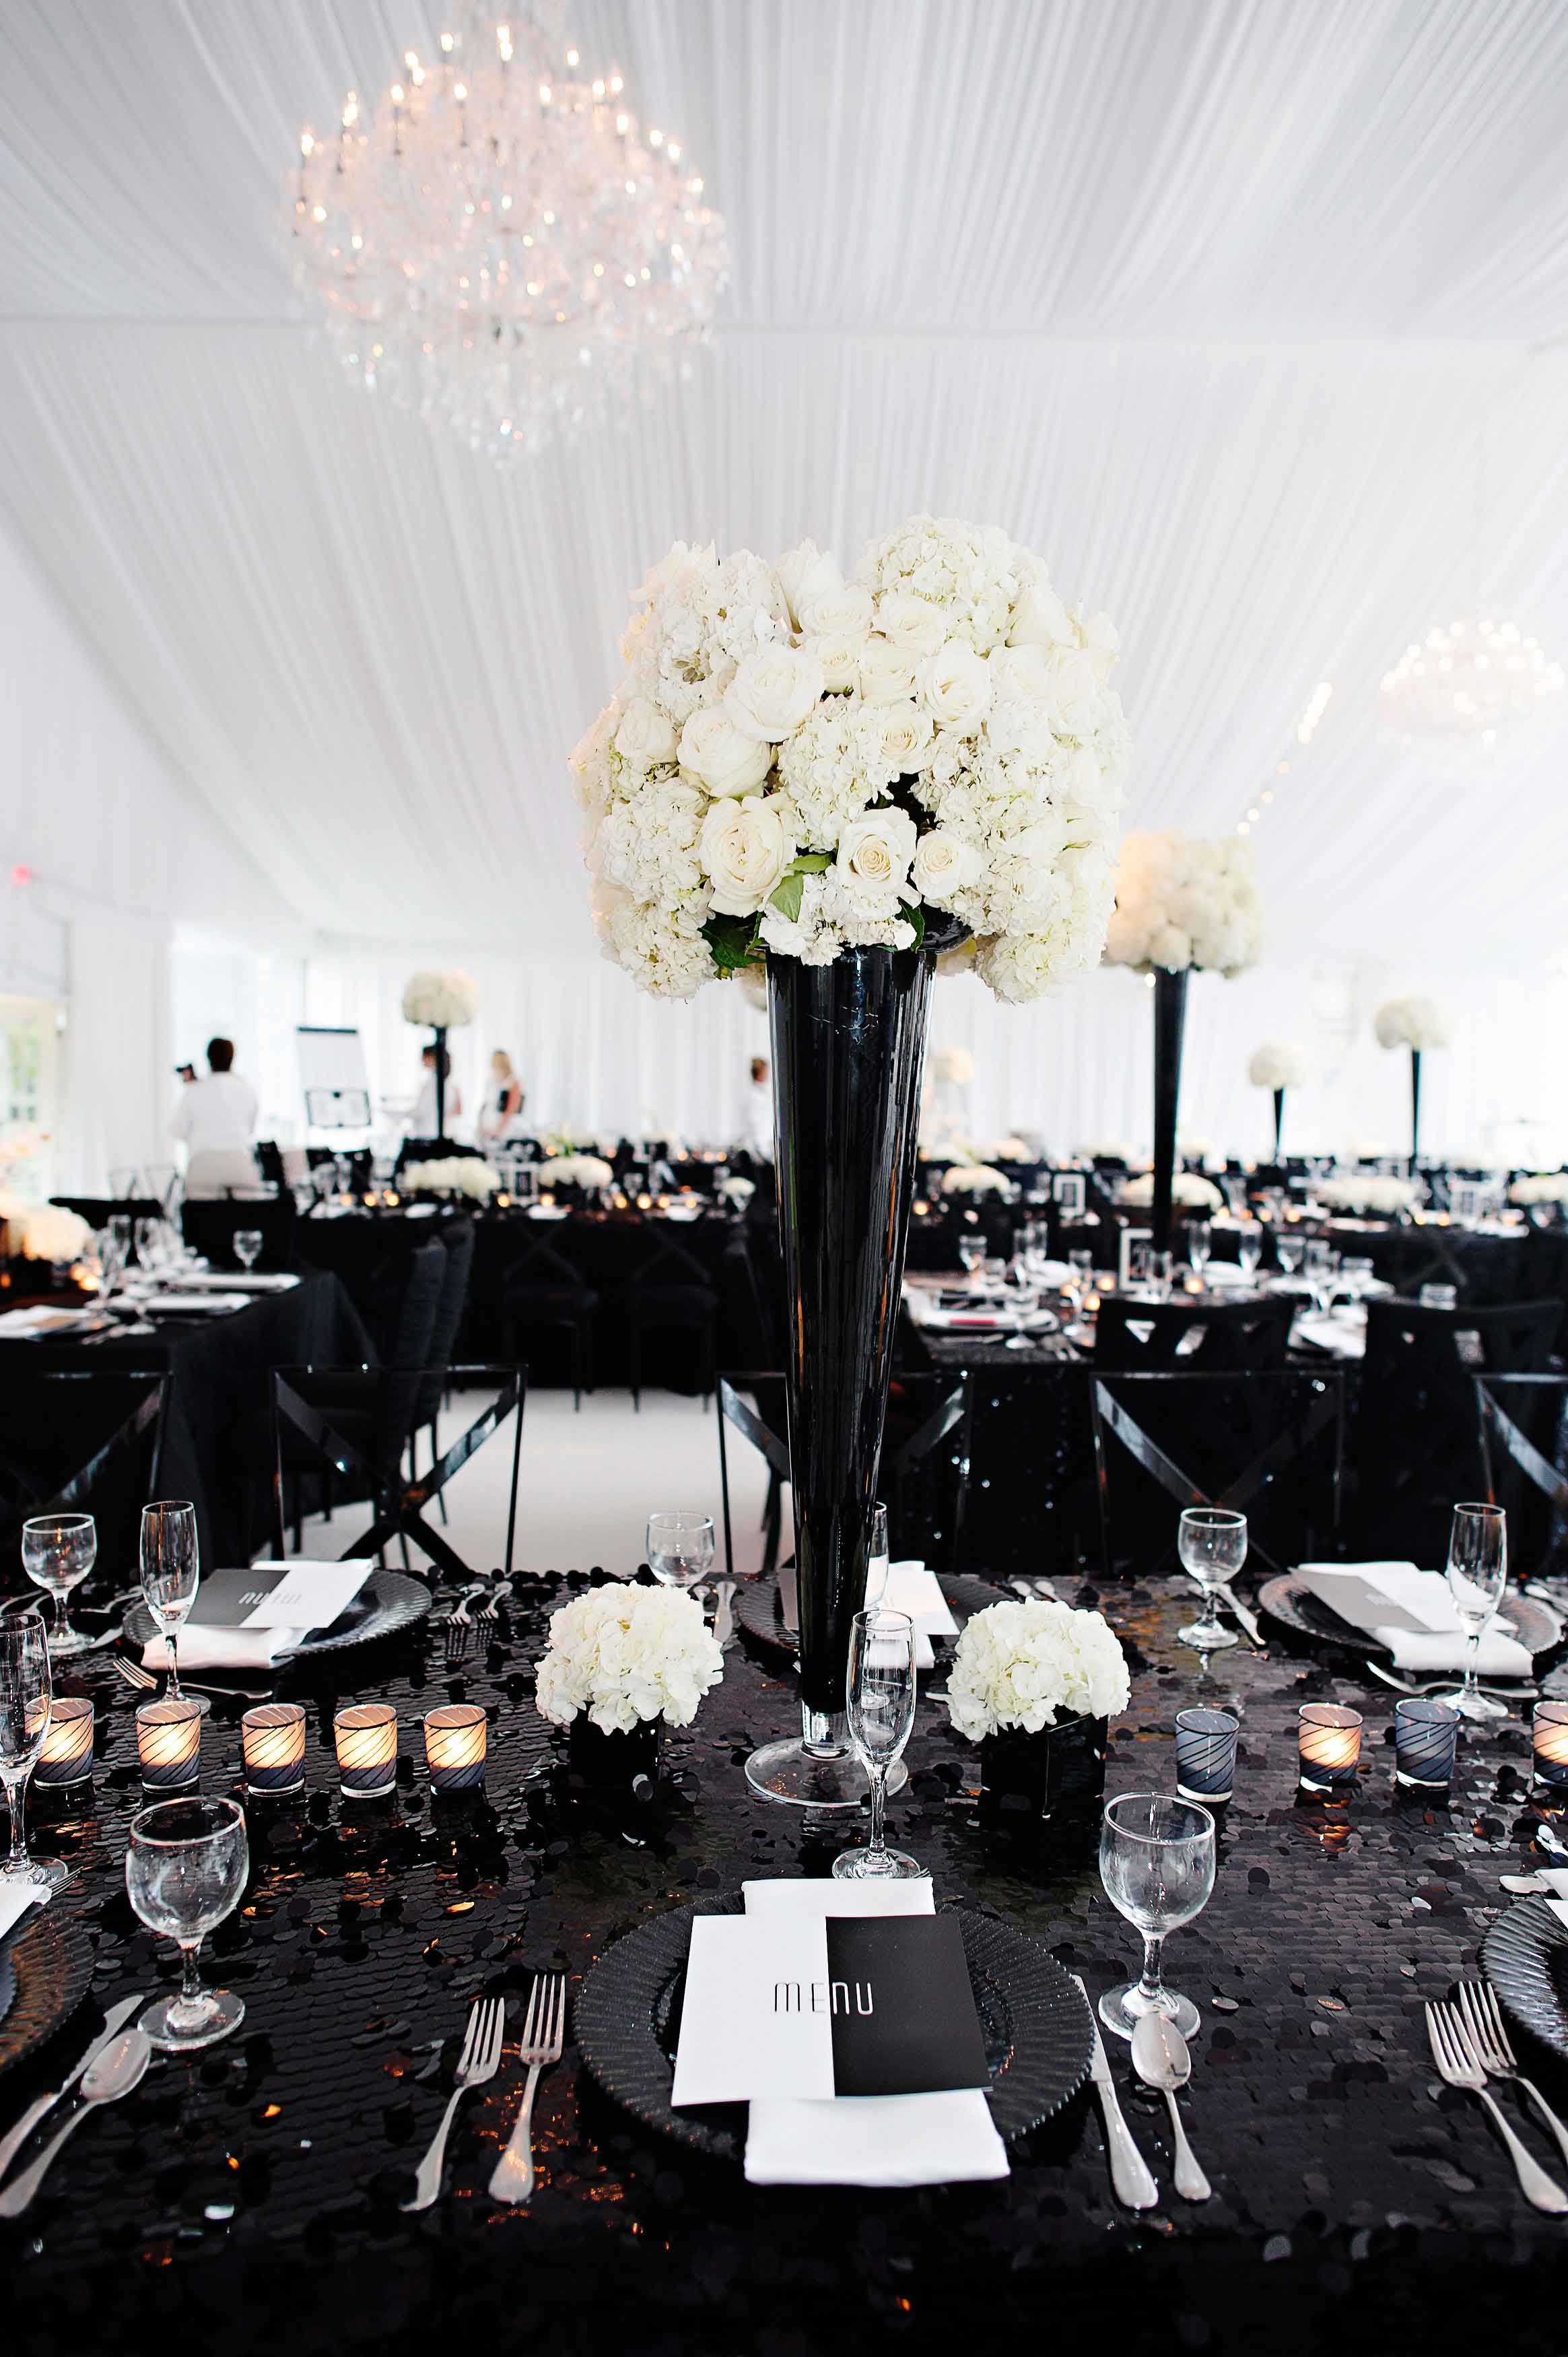 Black and White Wedding Ideas: Pros and Cons - Inside Weddings